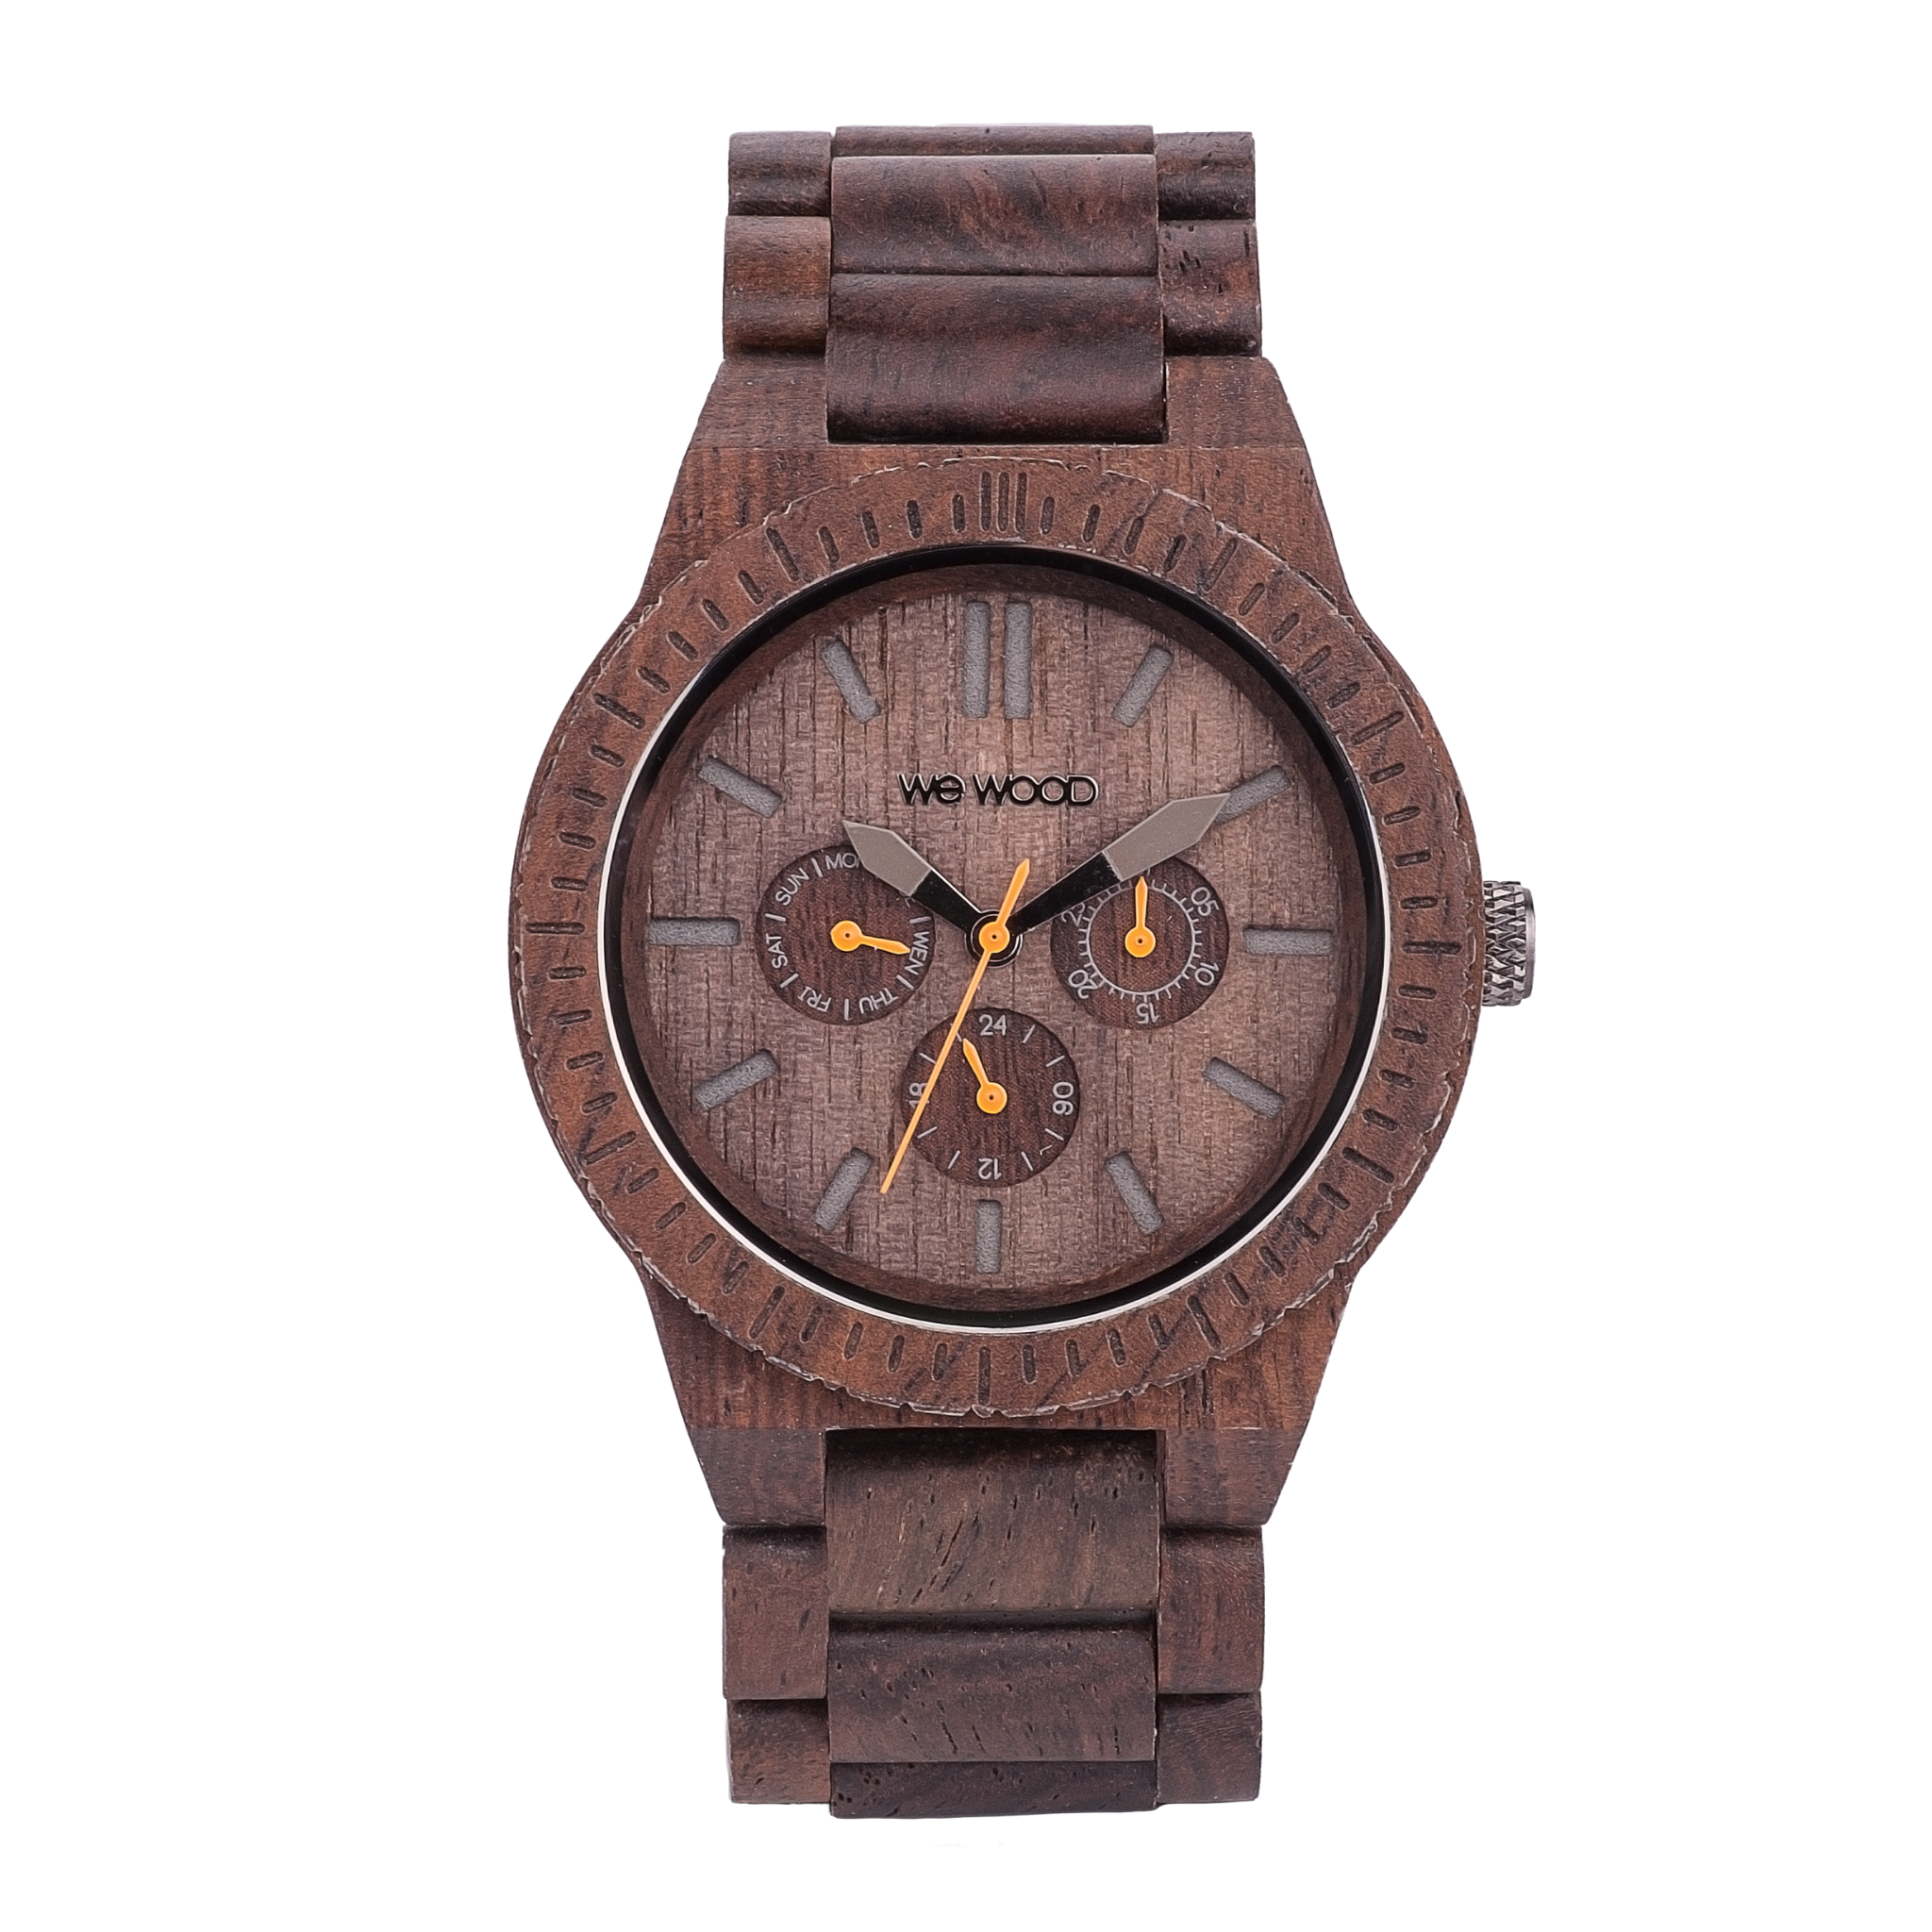 Kappa Wood Watch